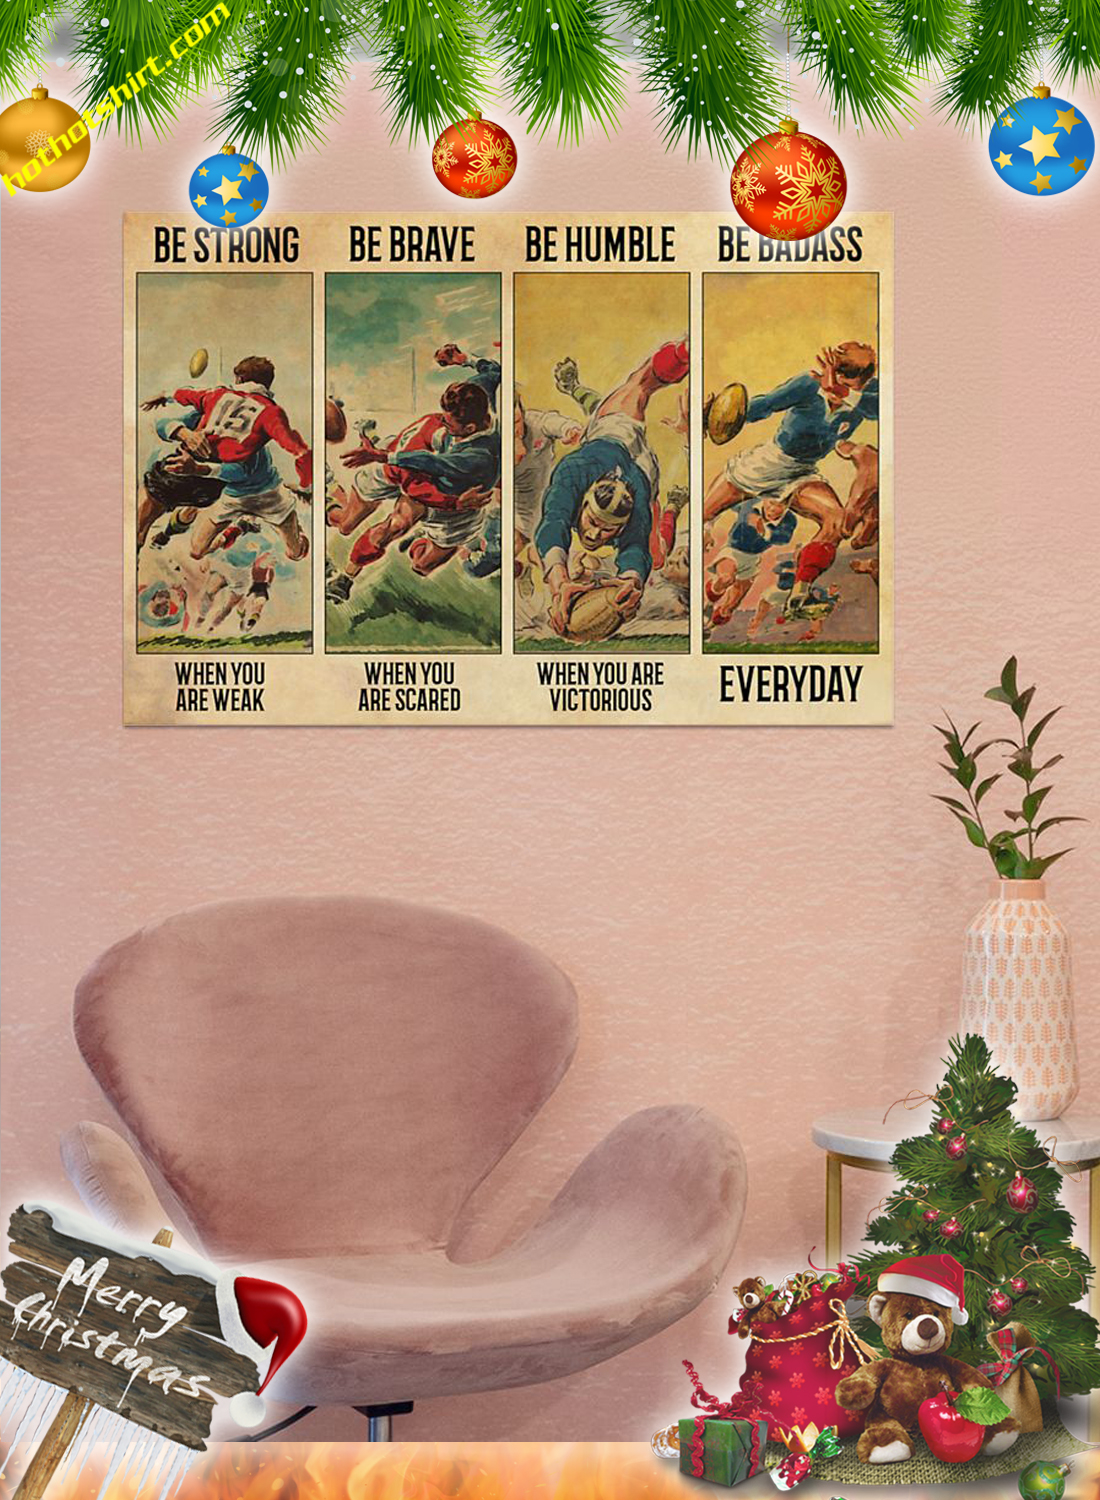 Vintage Rugby Be strong be brave be humble be badass poster 3